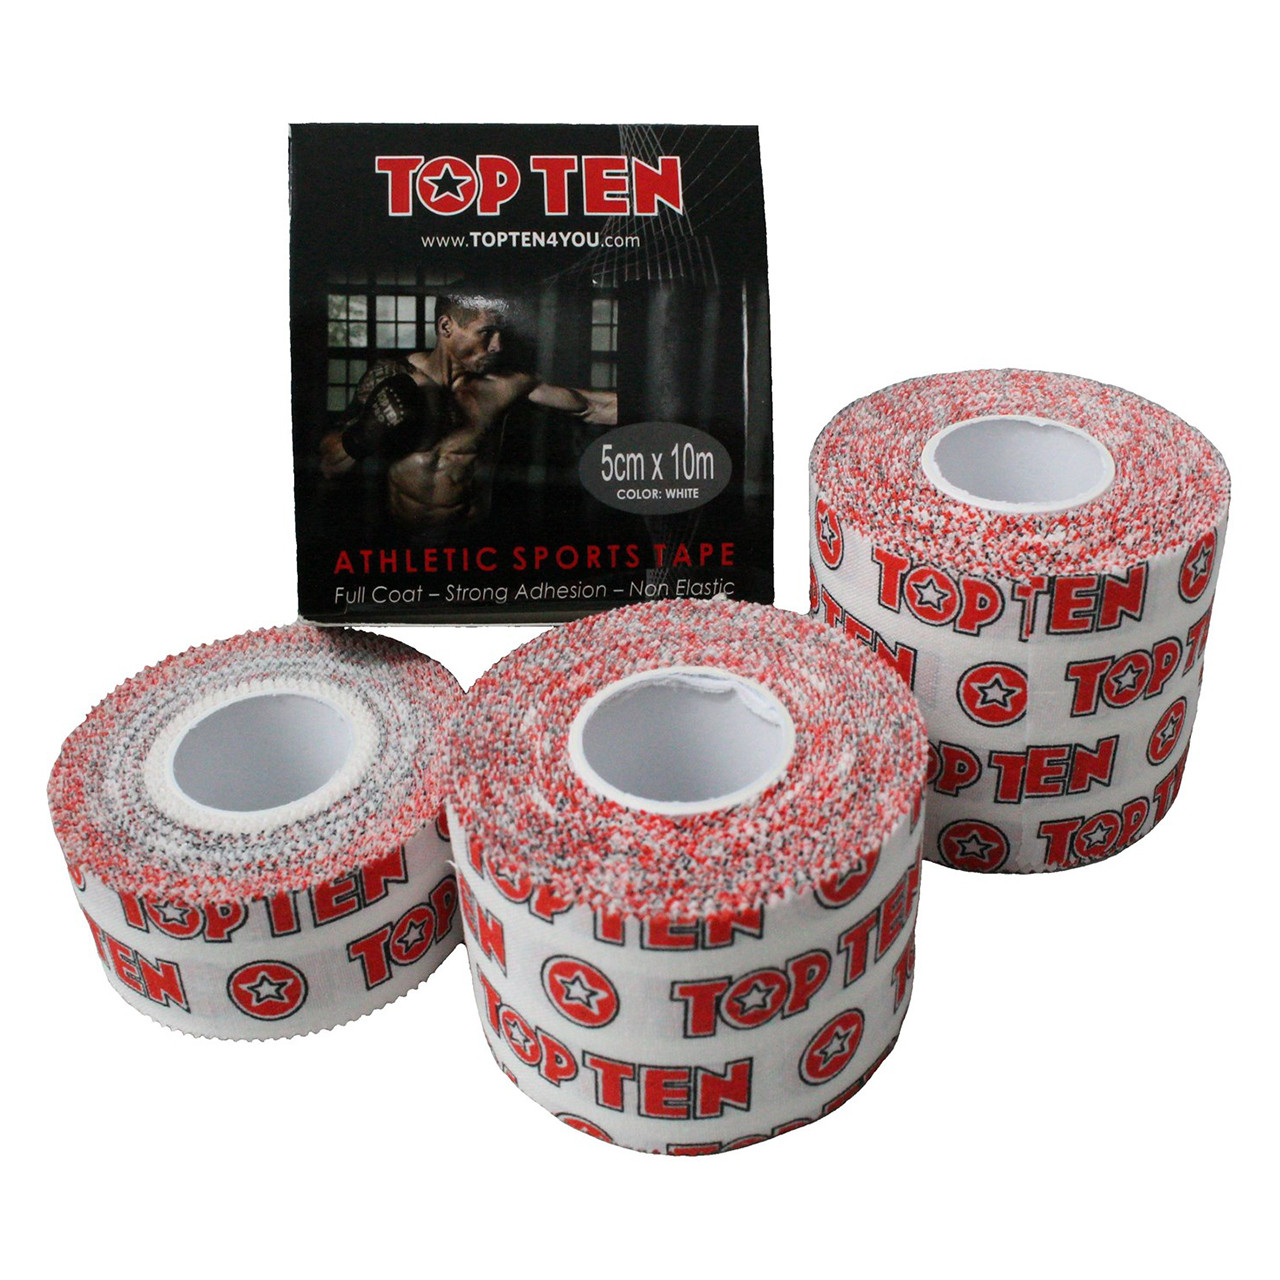 8432384331 TOP TEN Sports Tape (2301-1) - Kicksport